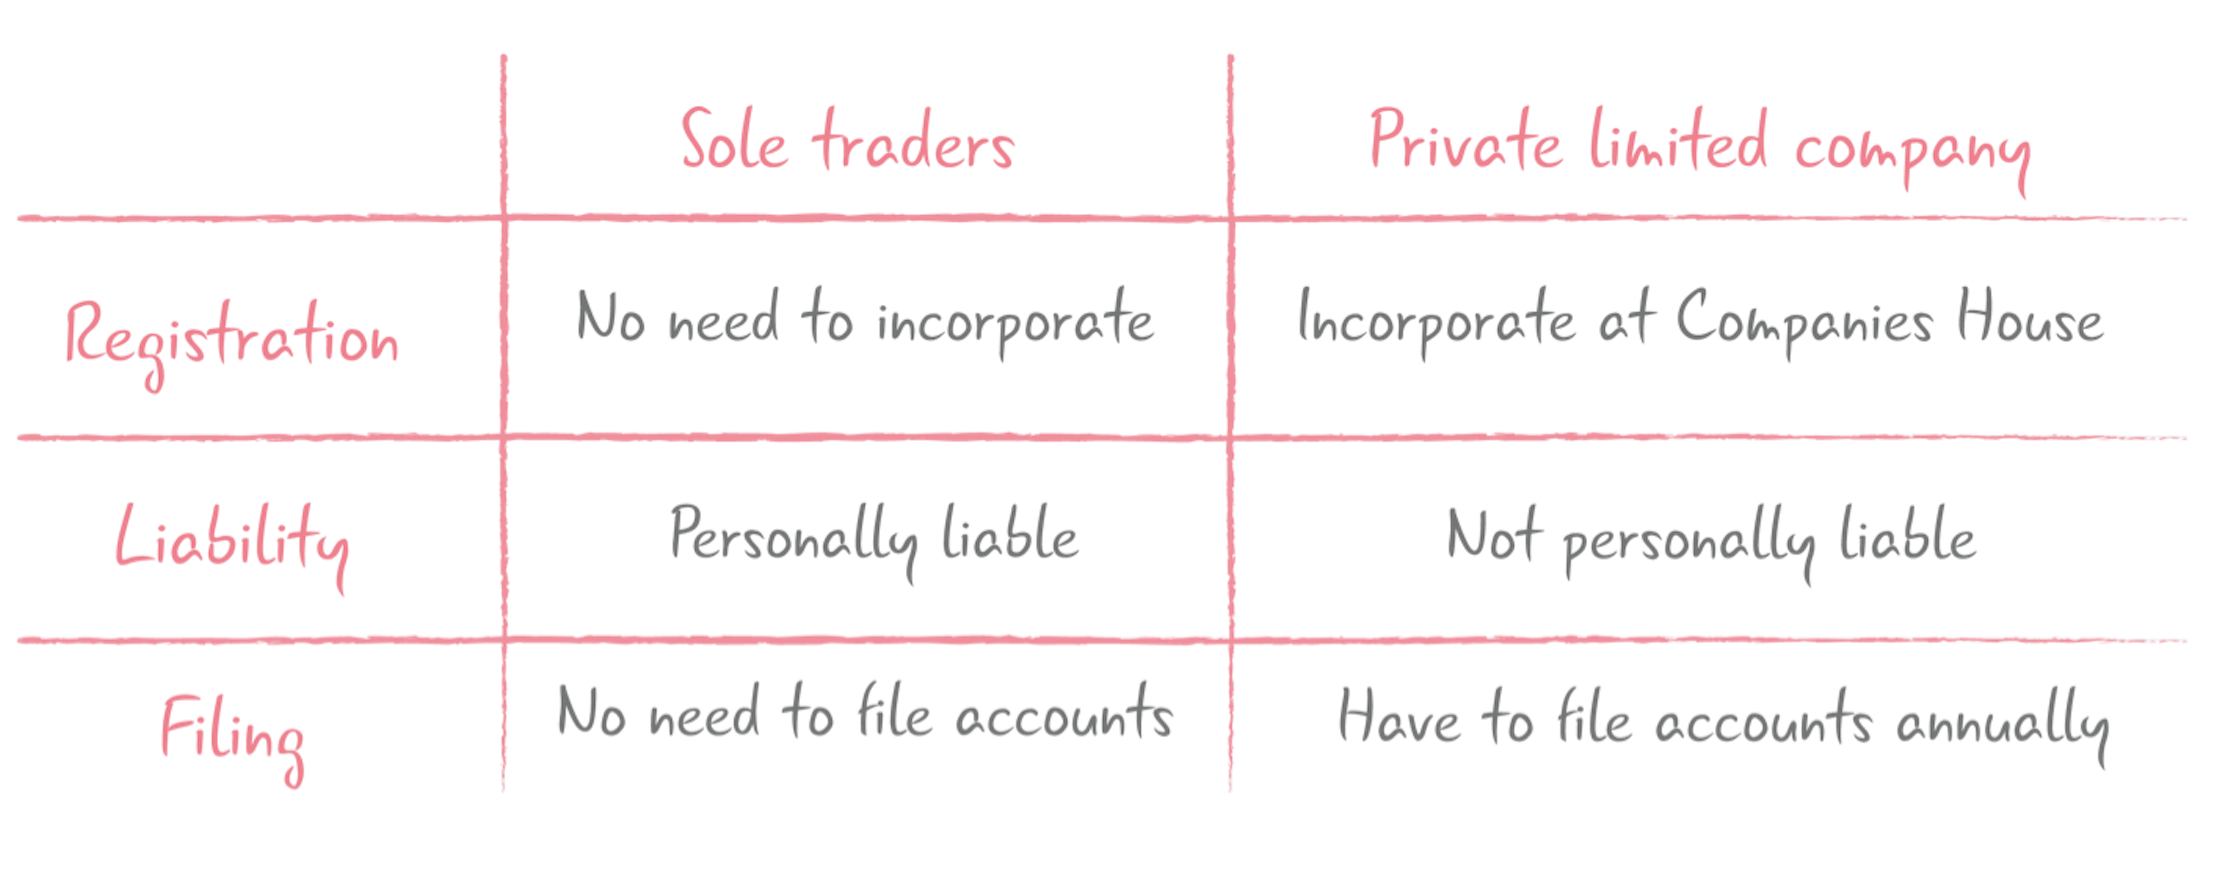 Key differences between a limited company and sole traders